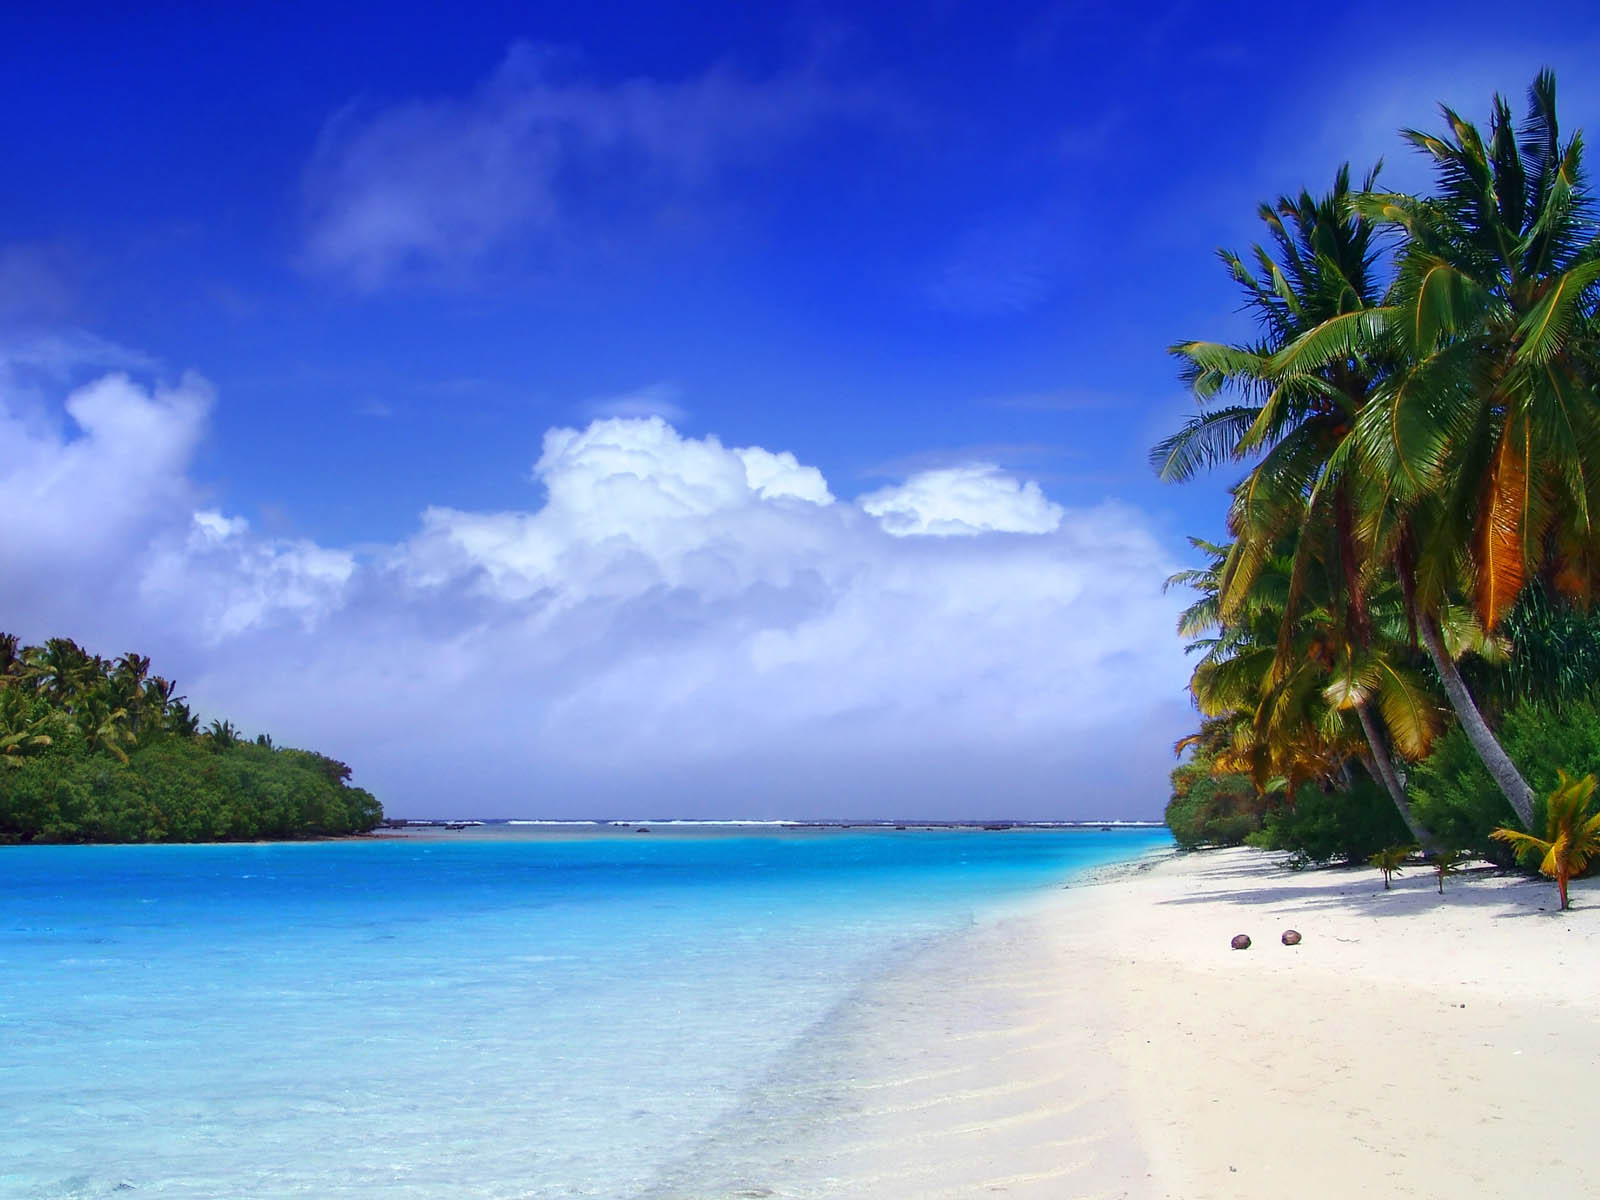 Wallpapers: Beach Wallpapers